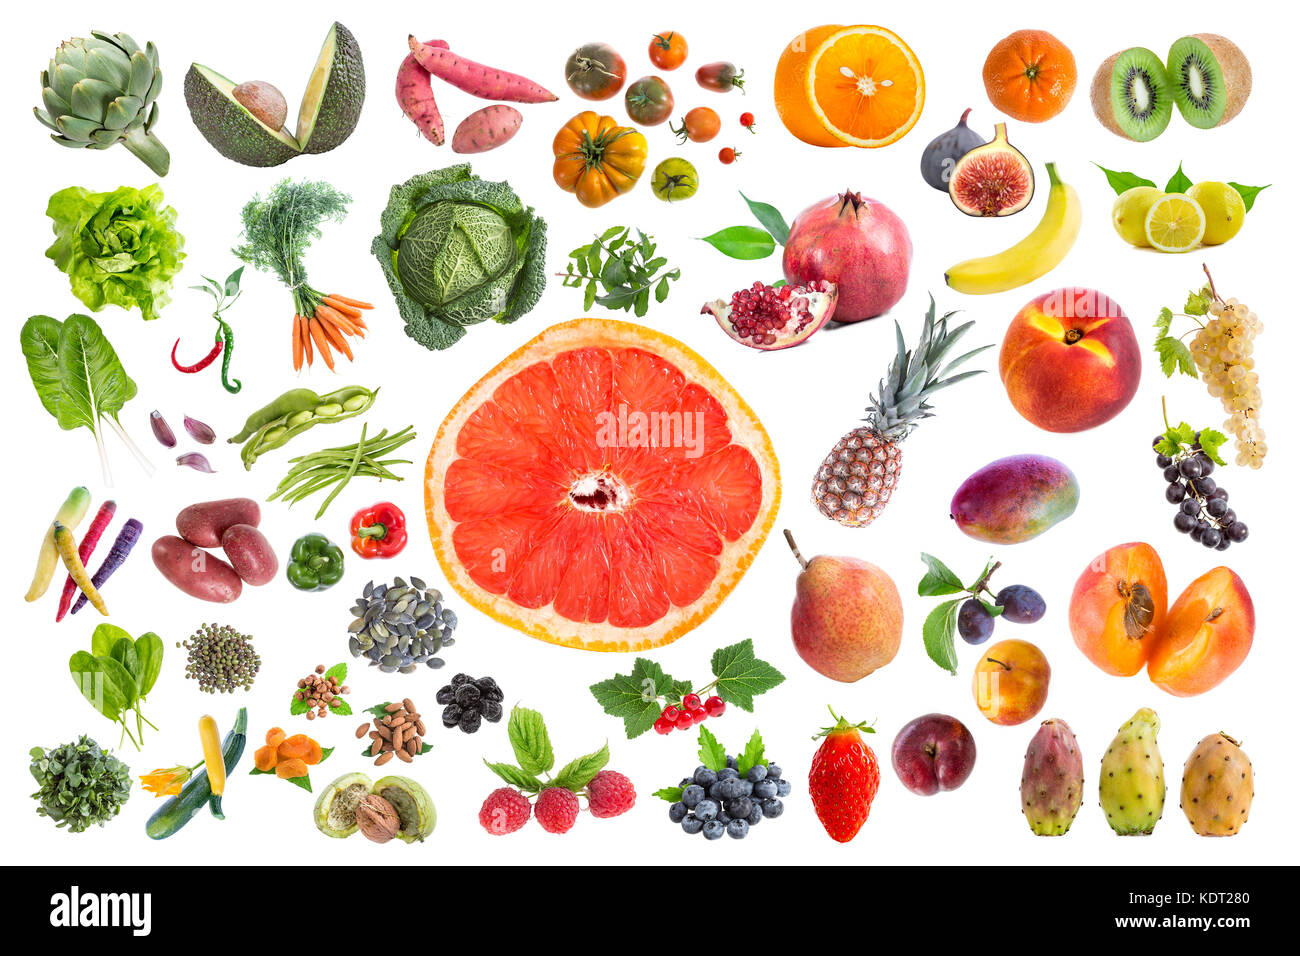 Five fruits and vegetables a day